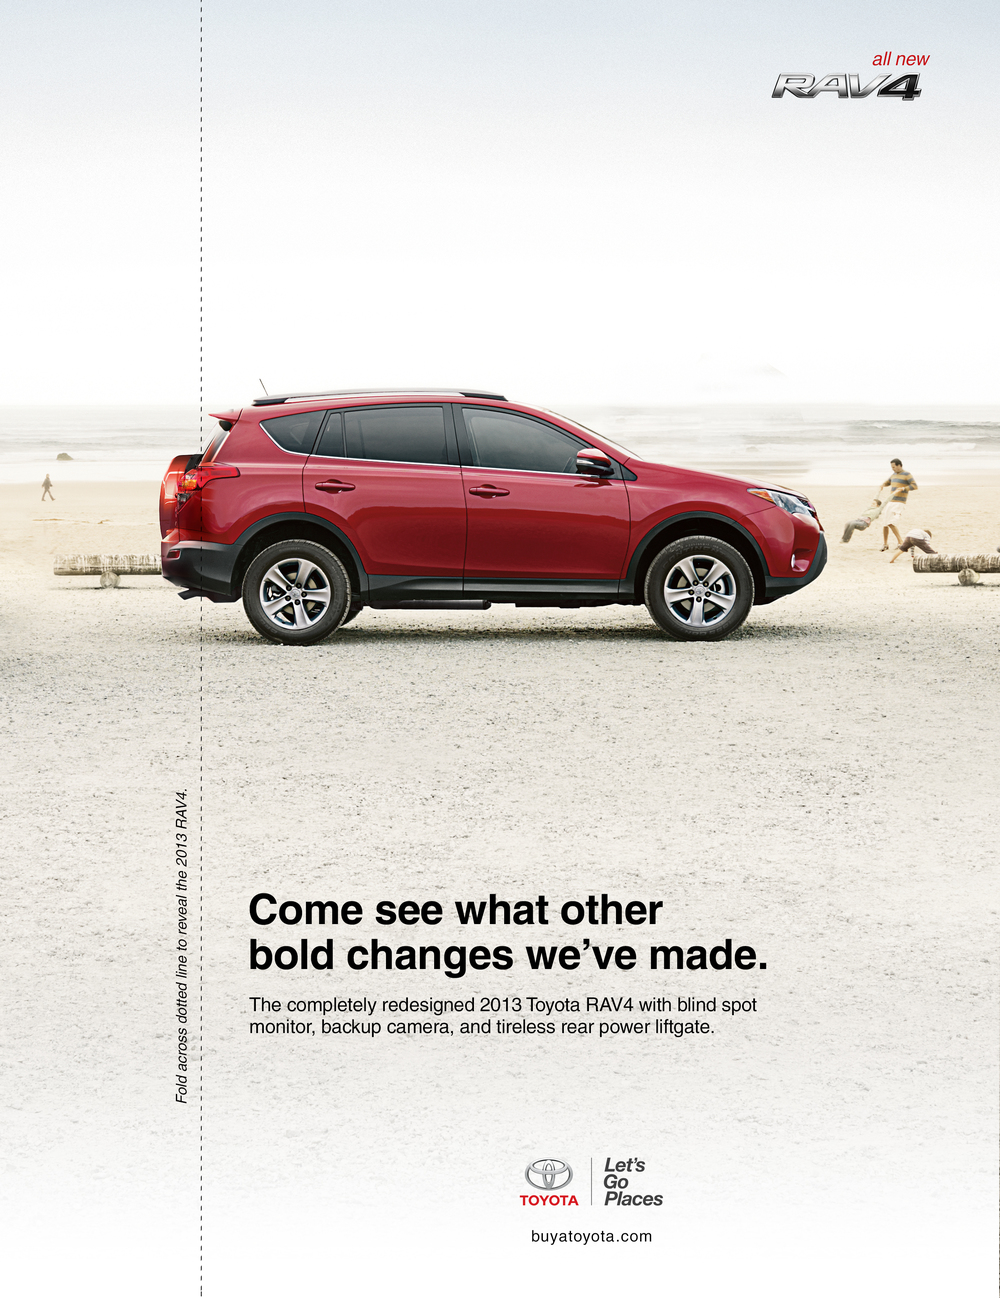 This ad was featured in the Ft. Lauderdale Auto Show program. To show people the biggest transformation the RAV4 made (removing the tire on the back of the lift-gate), we created an interactive ad in which the user not only gets to reveal the change themselves, but creates a dogeared marker to the RAV4 in the program.